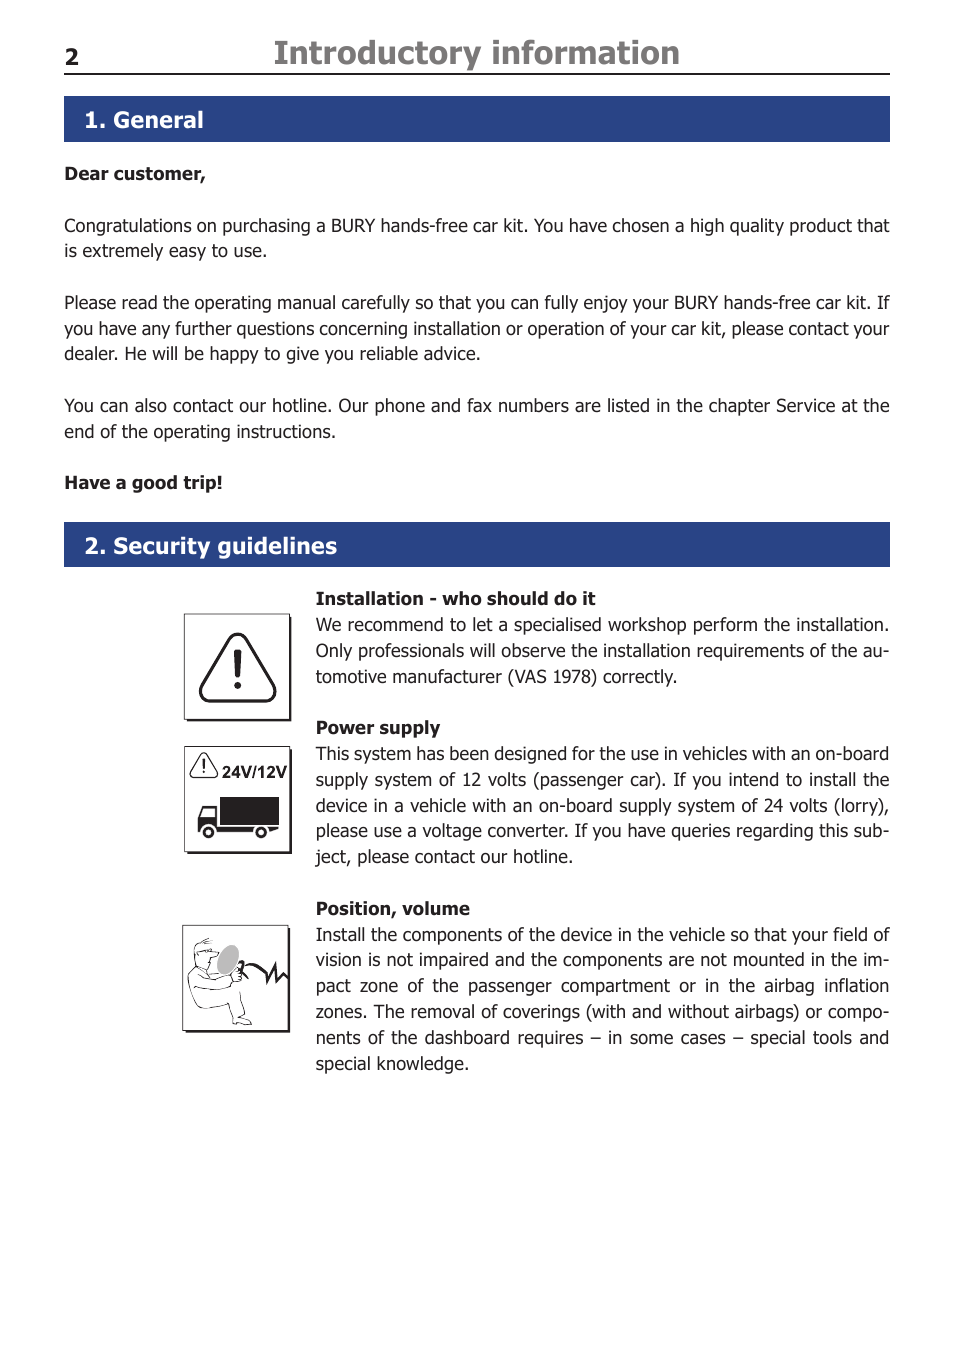 Introductory information, general, security guidelines | bury cc.